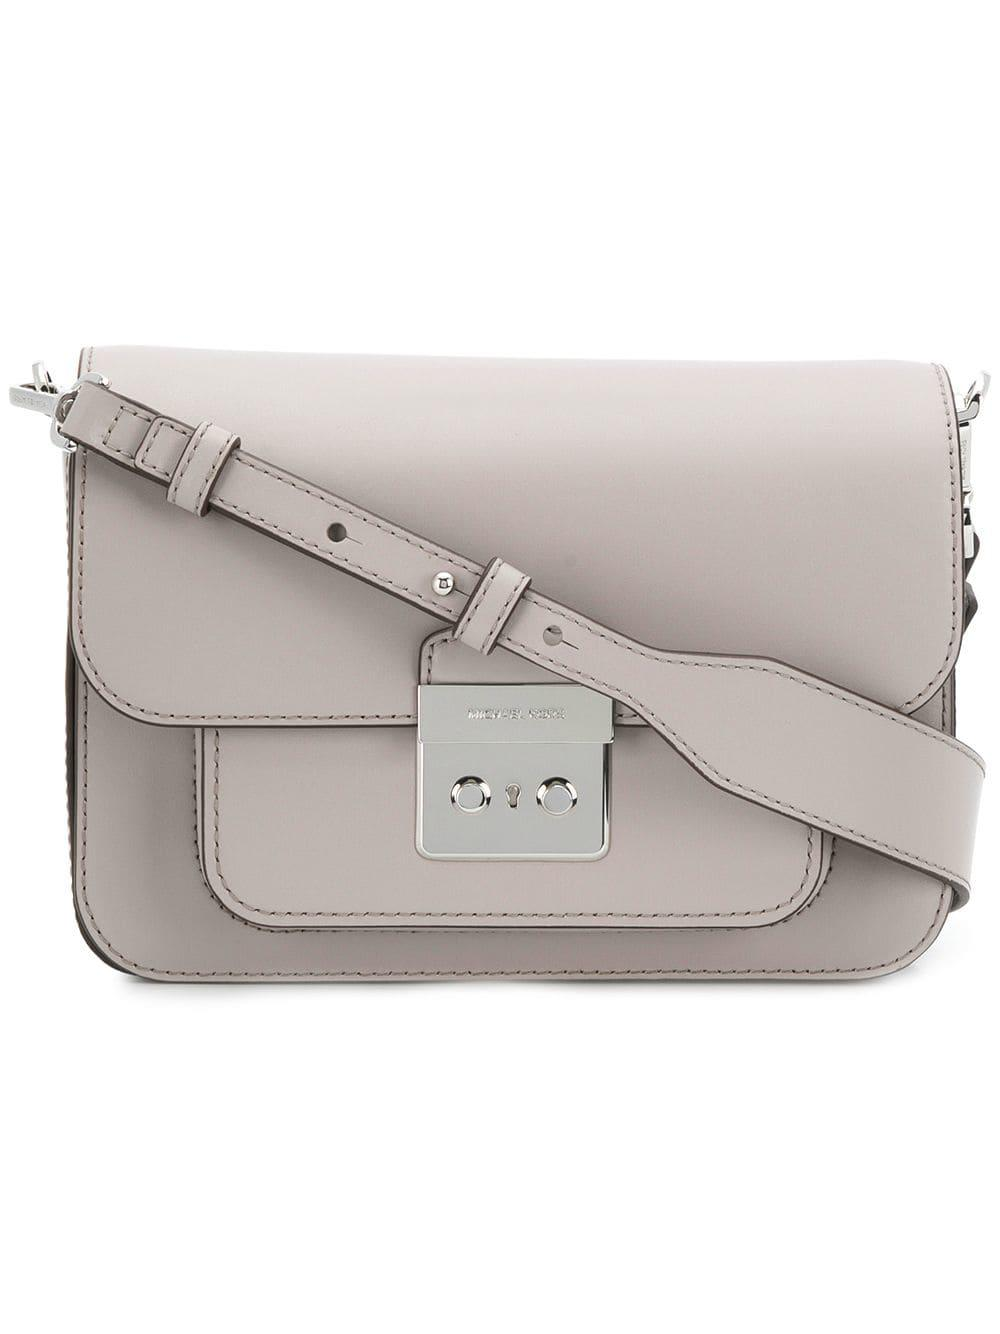 45b7b7f3c0fd MICHAEL Michael Kors Sloan Editor Leather Shoulder Bag in Gray - Lyst